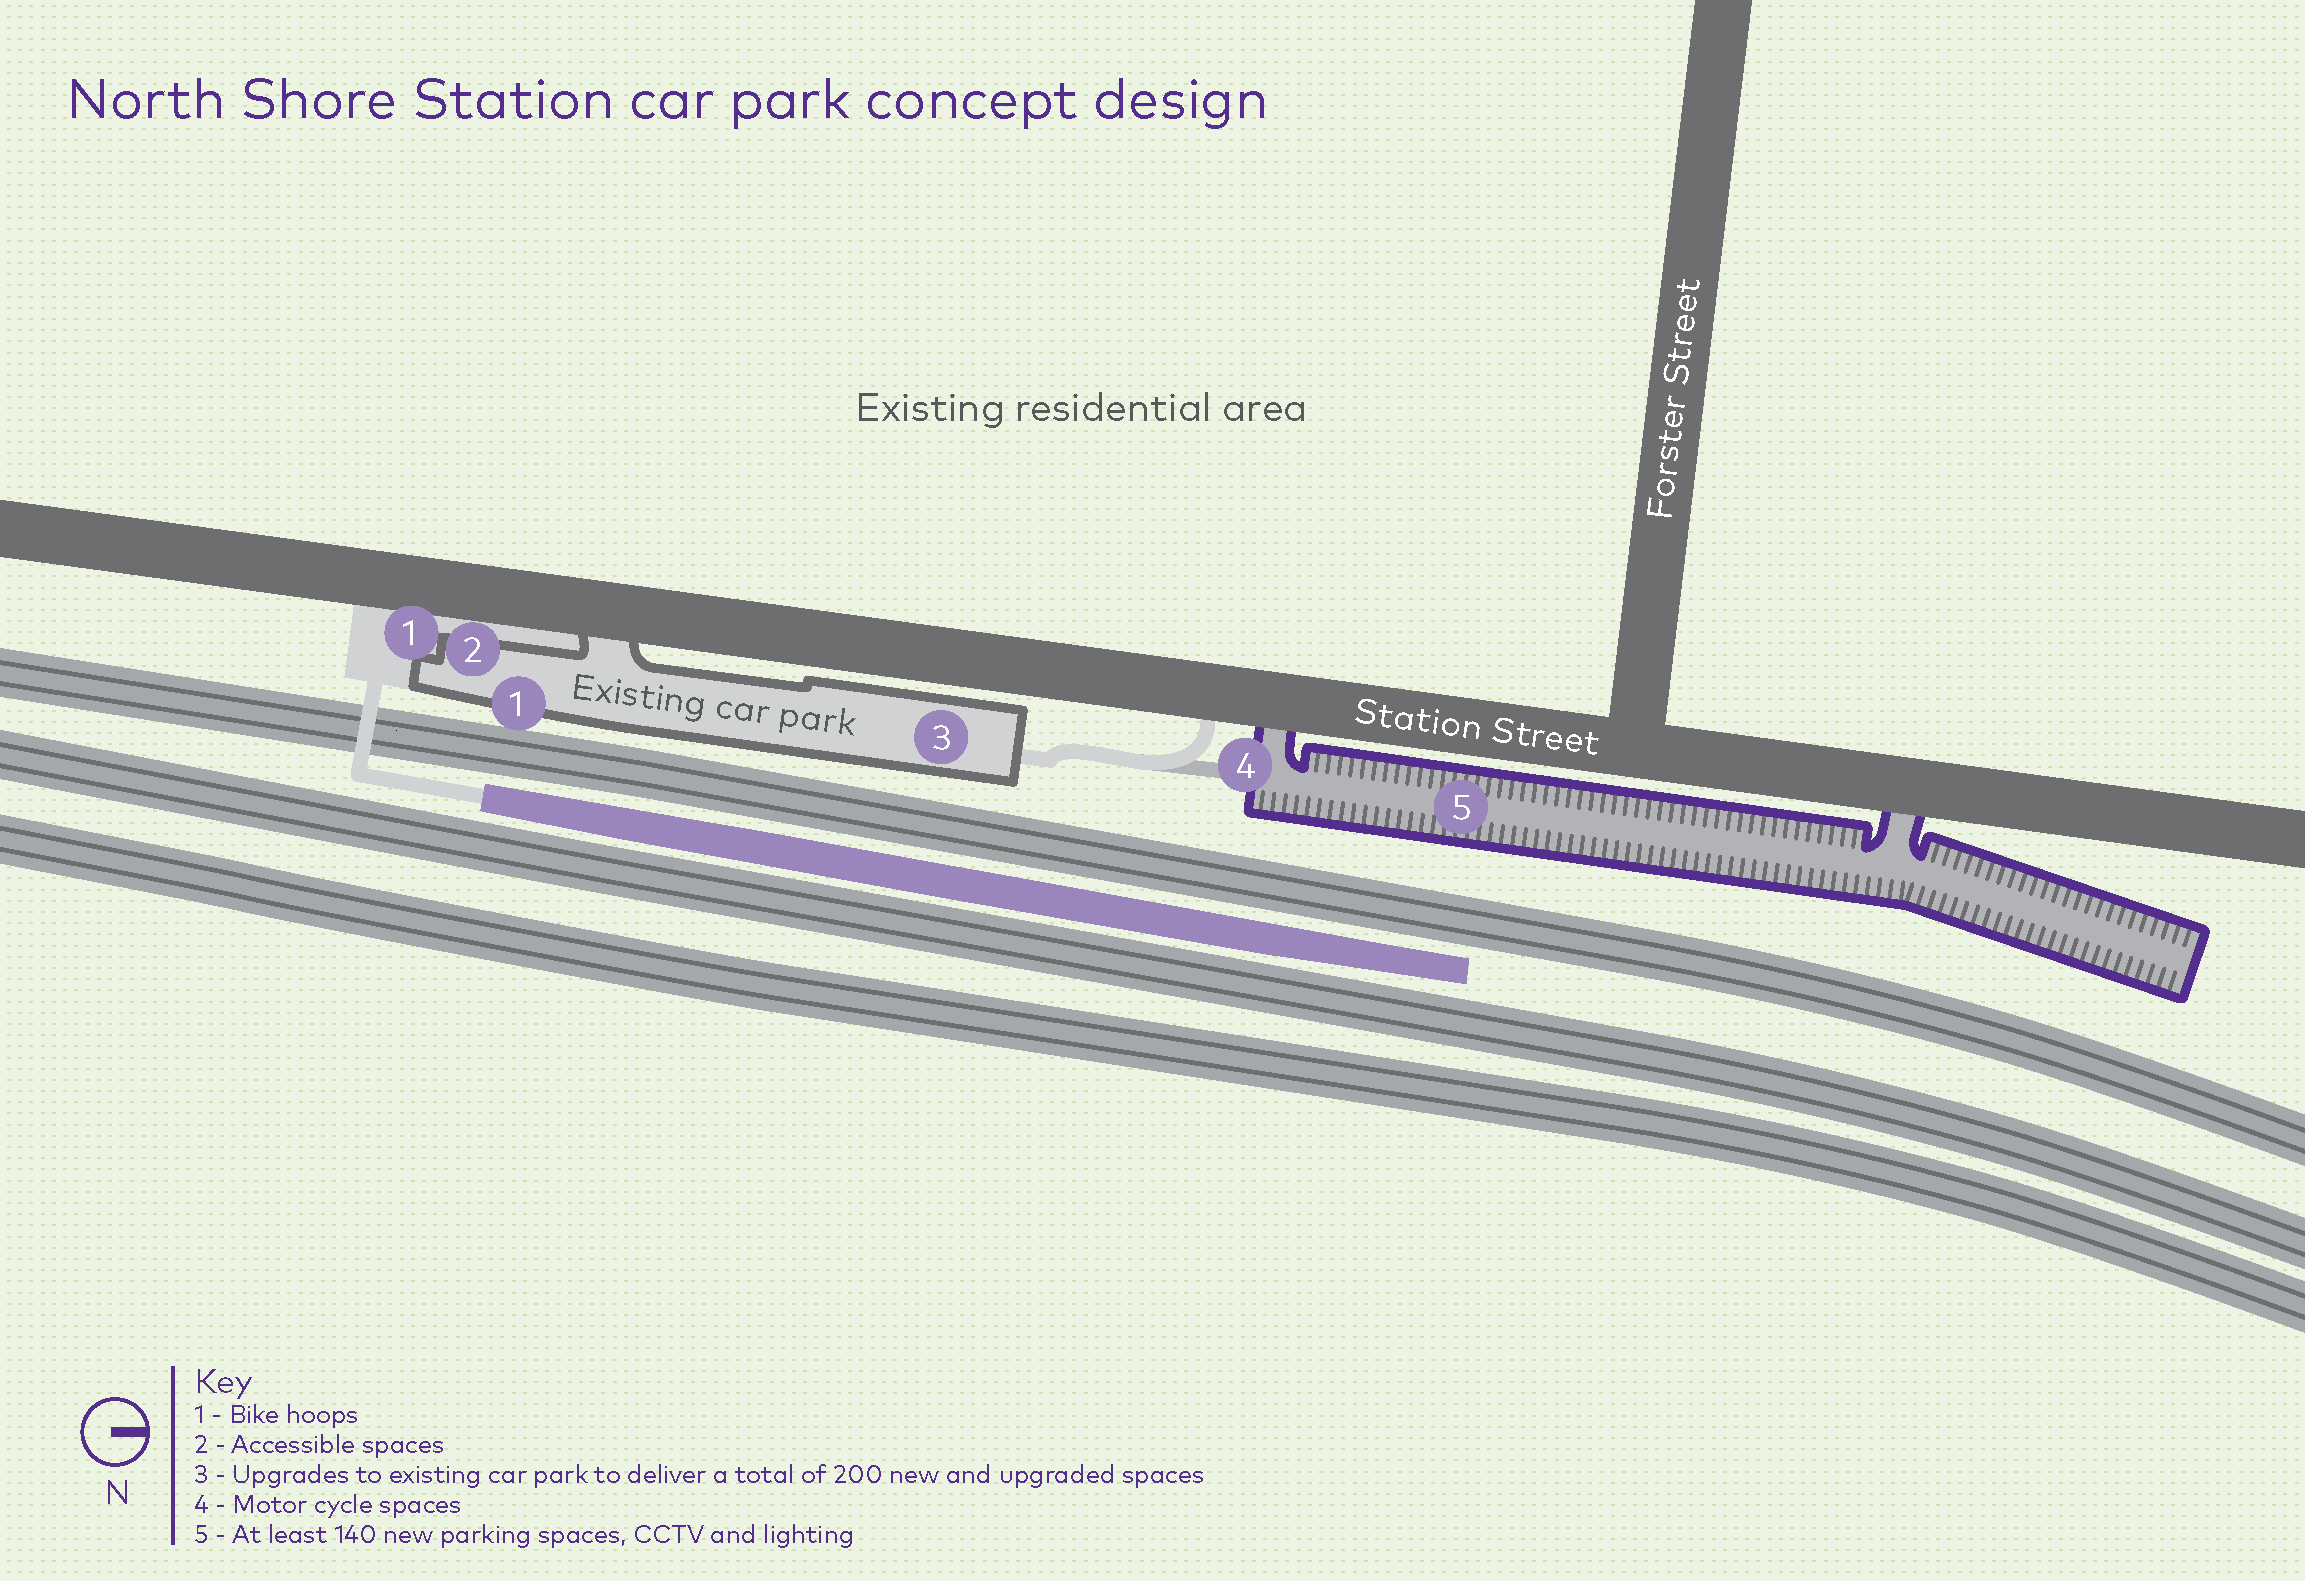 The concept design for the North Shore car park upgrade. The design shows the proposed assets to be constructed or upgraded including new car parking (including accessible spaces), bike hoops, motor cycle spaces, CCTV and lighting.